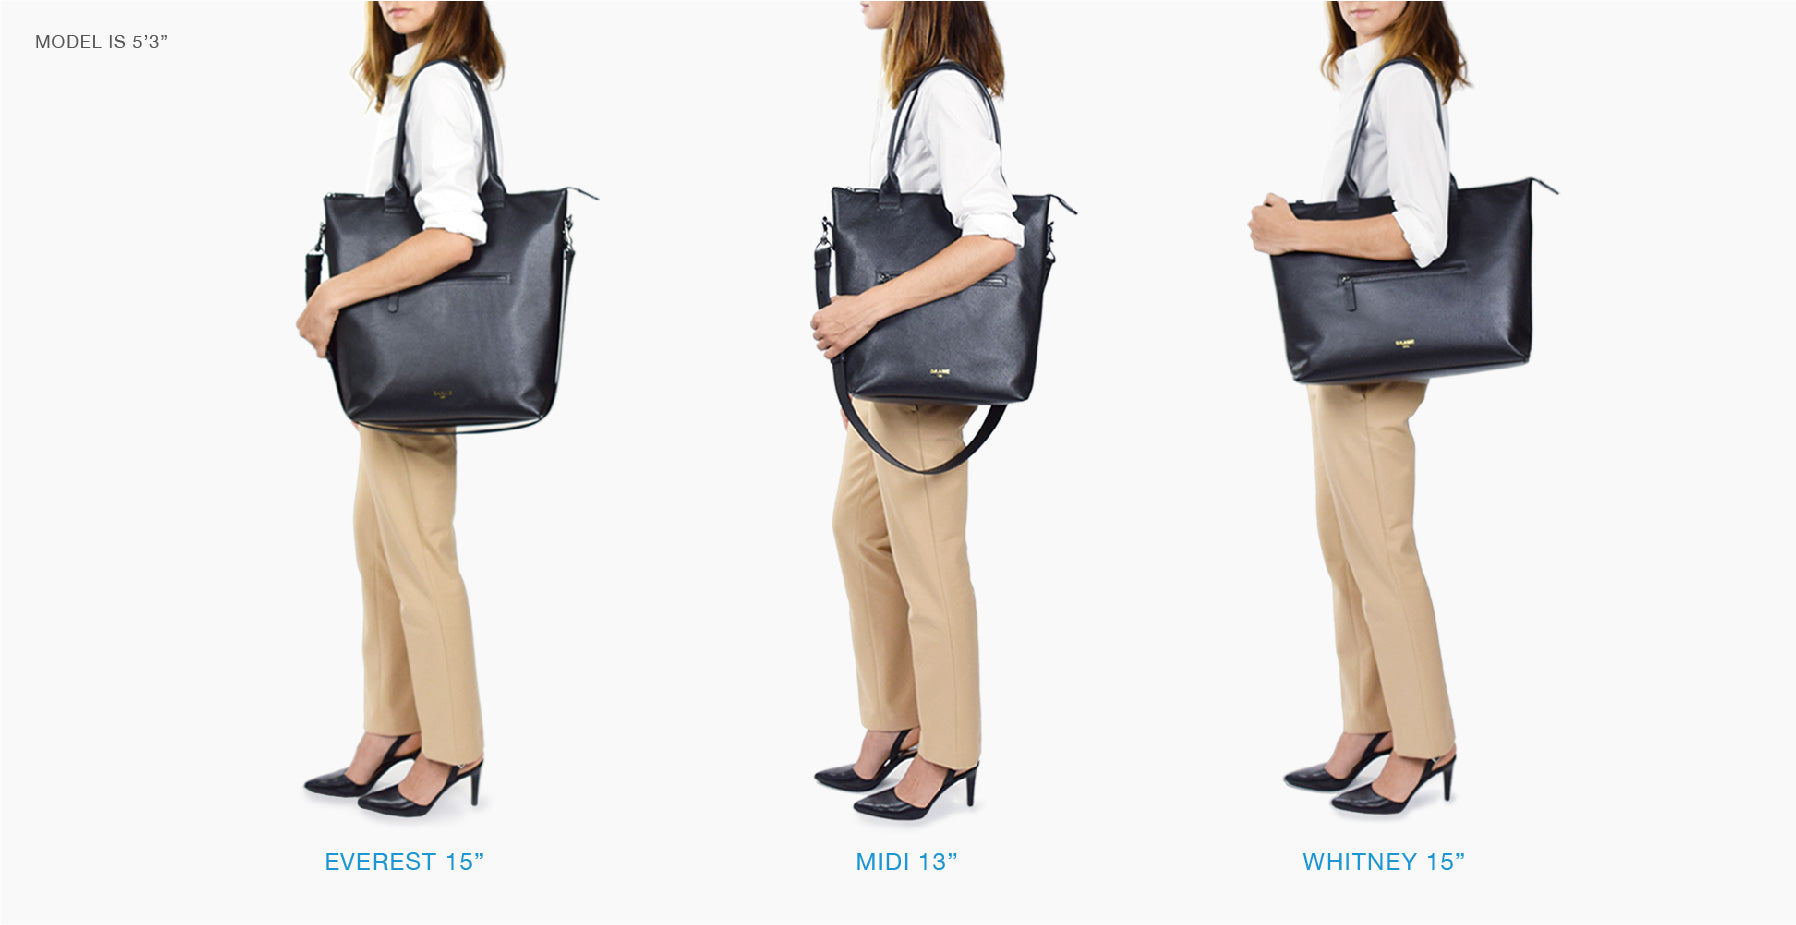 Daame laptop tote size comparison